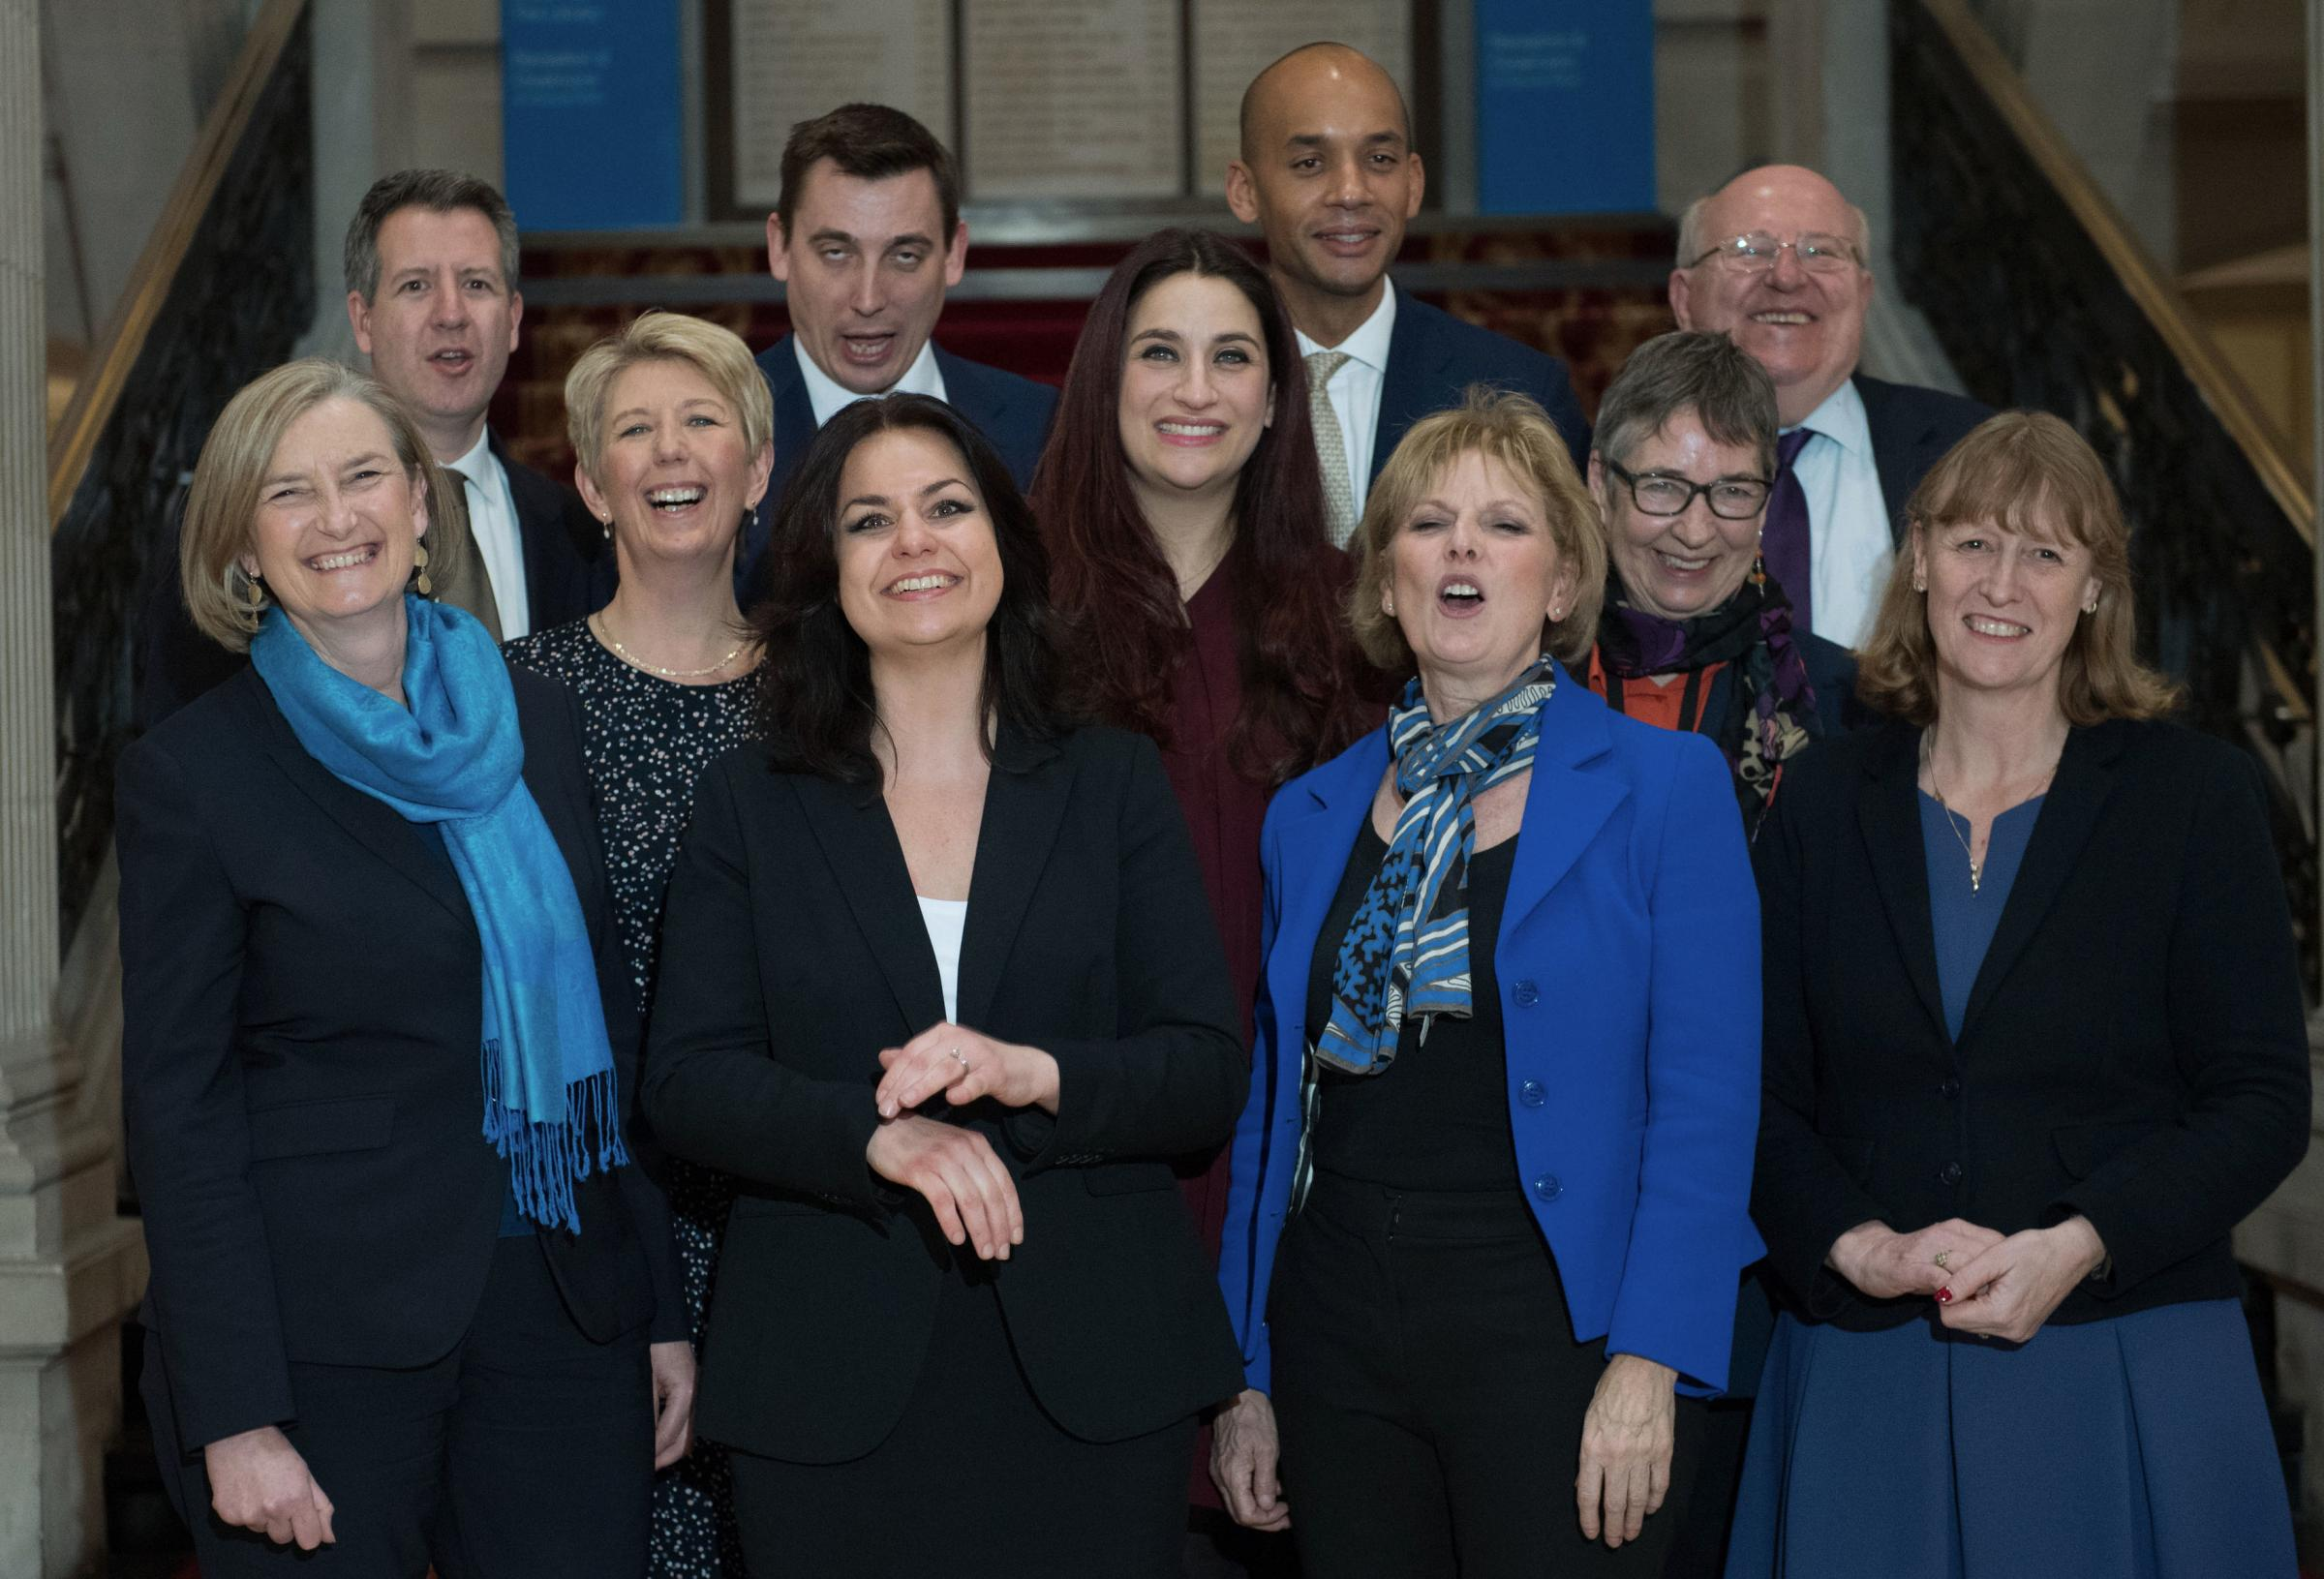 (back row left to right) Chris Leslie, Gavin Shuker, Chuka Umunna and Mike Gapes, (middle row, left to right) Angela Smith, Luciana Berger and Ann Coffey, (front row, left to right) Sarah Wollaston, Heidi Allen, Anna Soubry and Joan Ryan